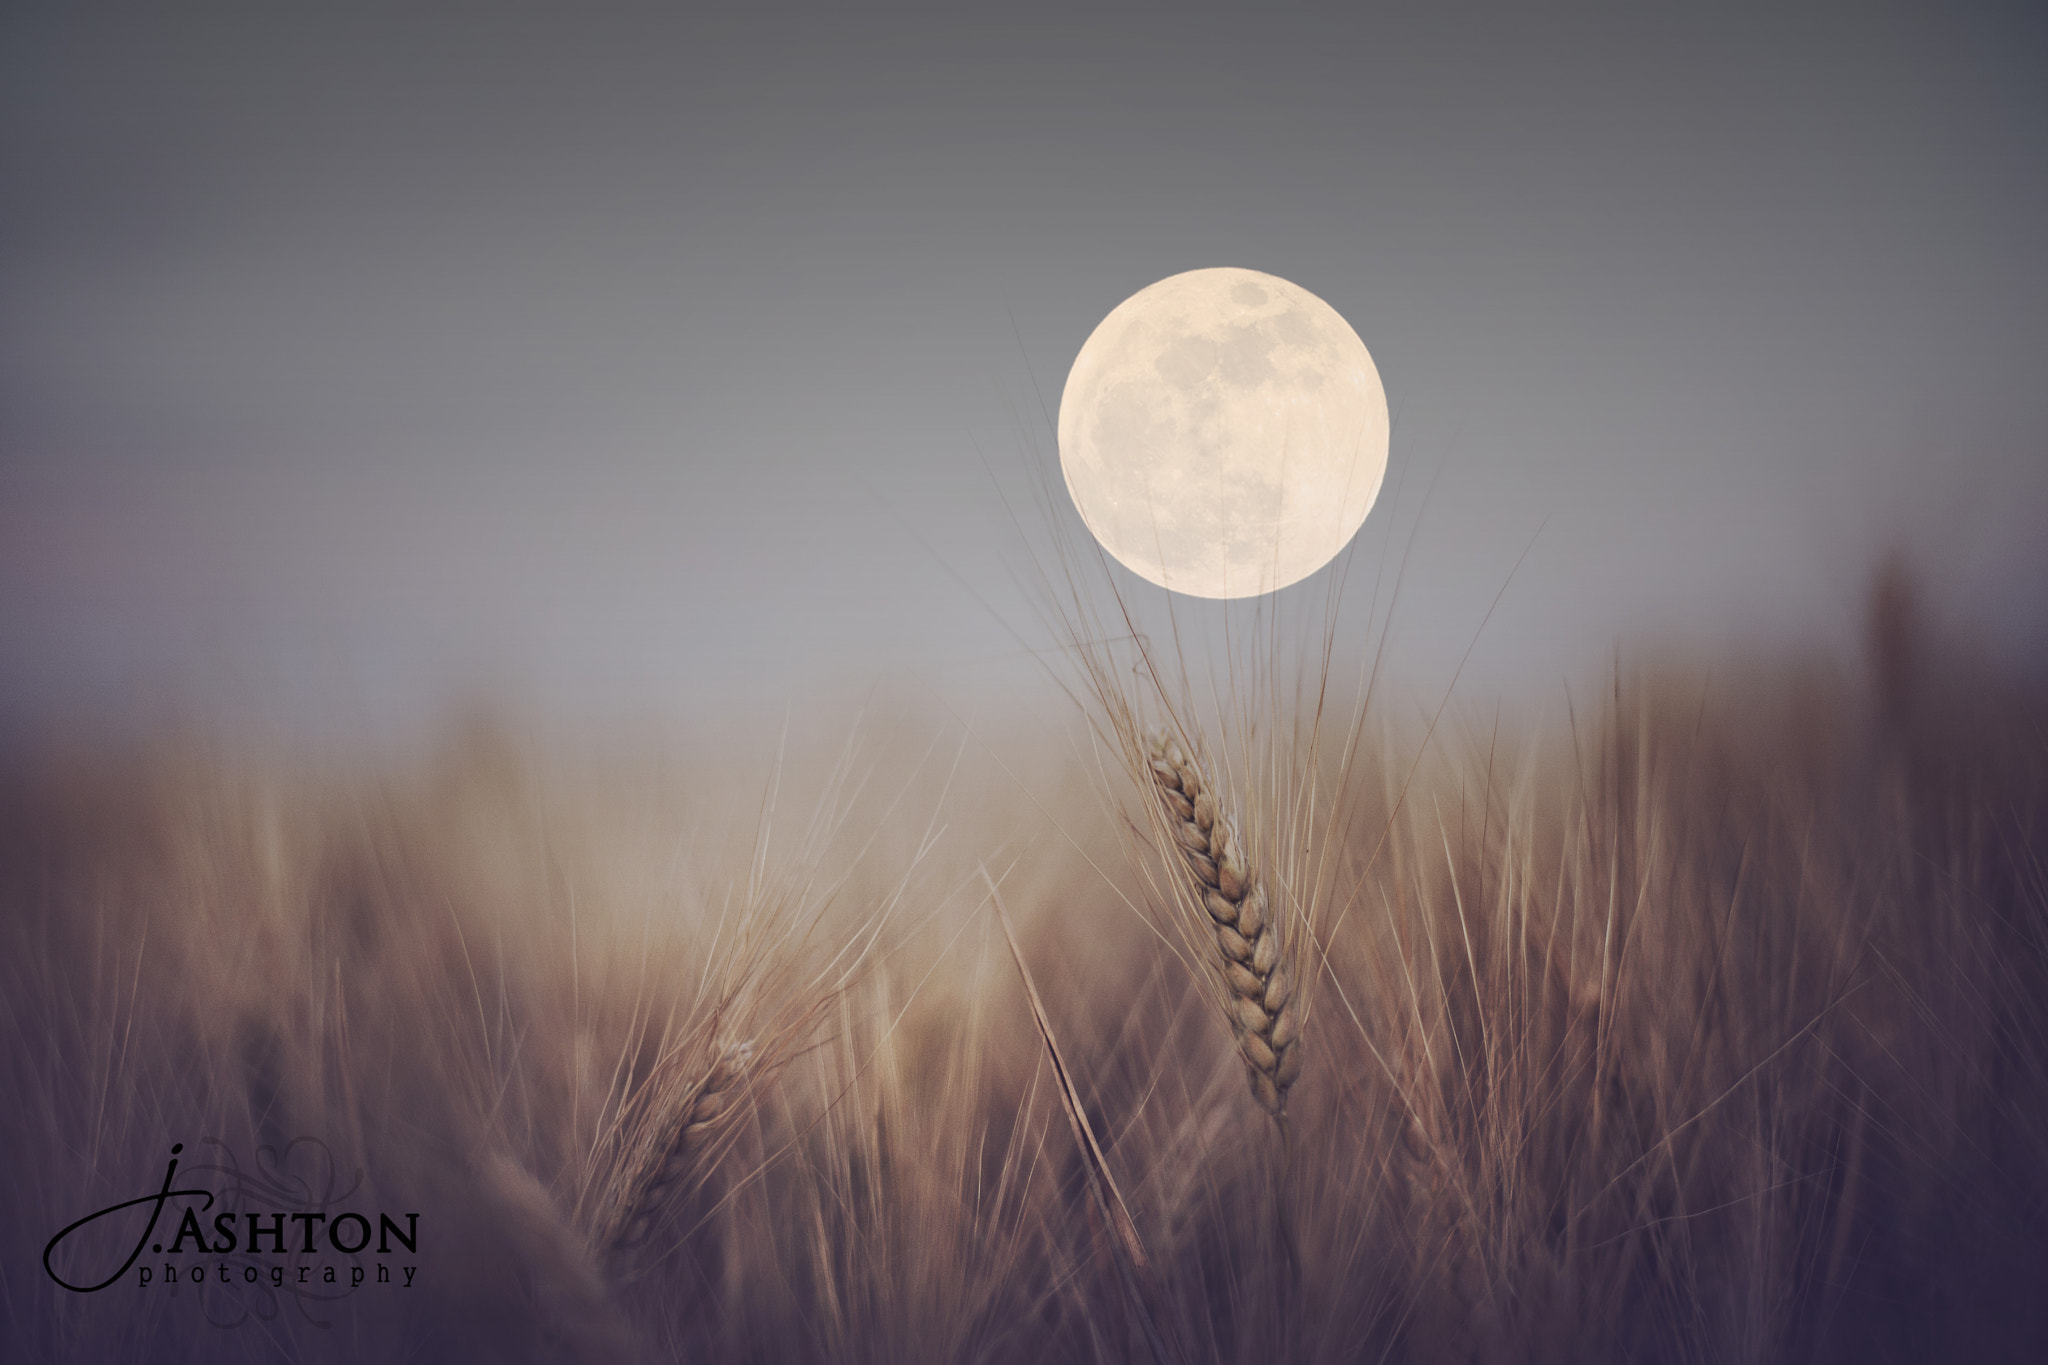 Photograph Super Moon AZ by Justin Ashton on 500px